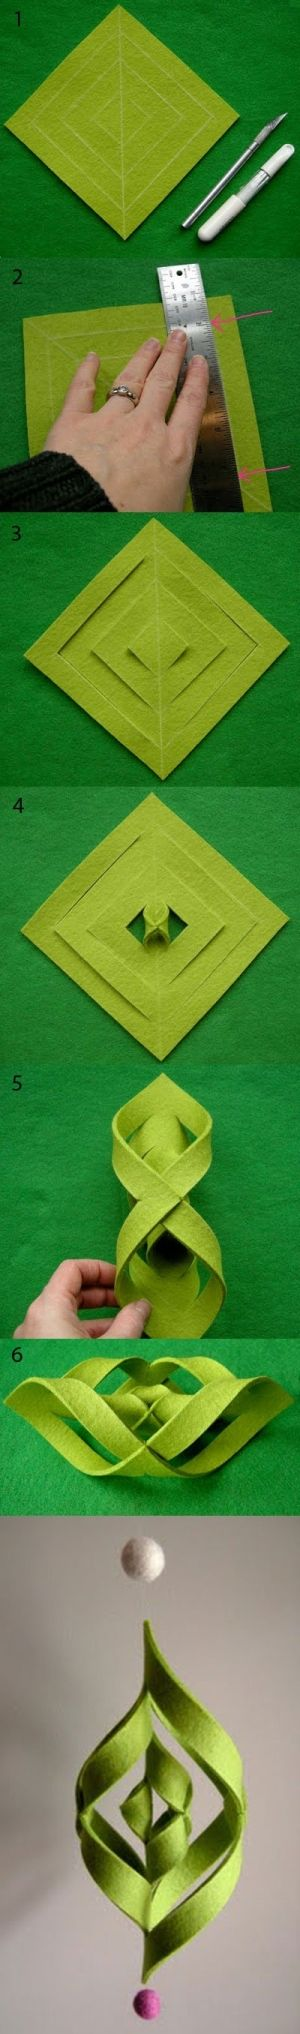 This is pretty cool and easy! My mom used this to make a star - need to post a photo of that. by Brenda Olmsted